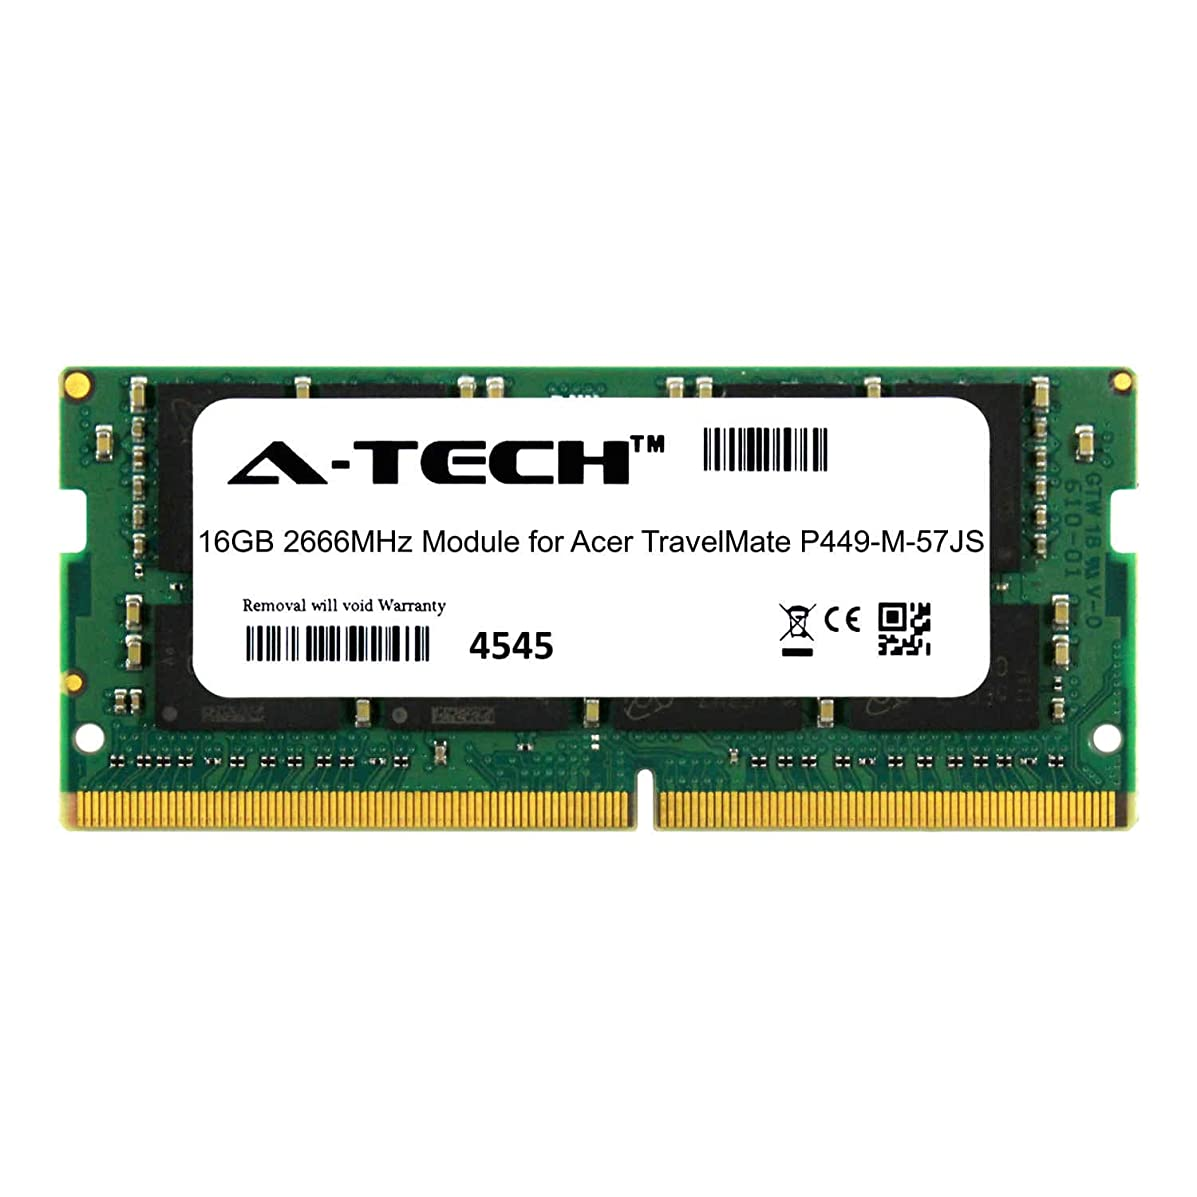 A-Tech 16GB Module for Acer TravelMate P449-M-57JS Laptop & Notebook Compatible DDR4 2666Mhz Memory Ram (ATMS352452A25832X1)